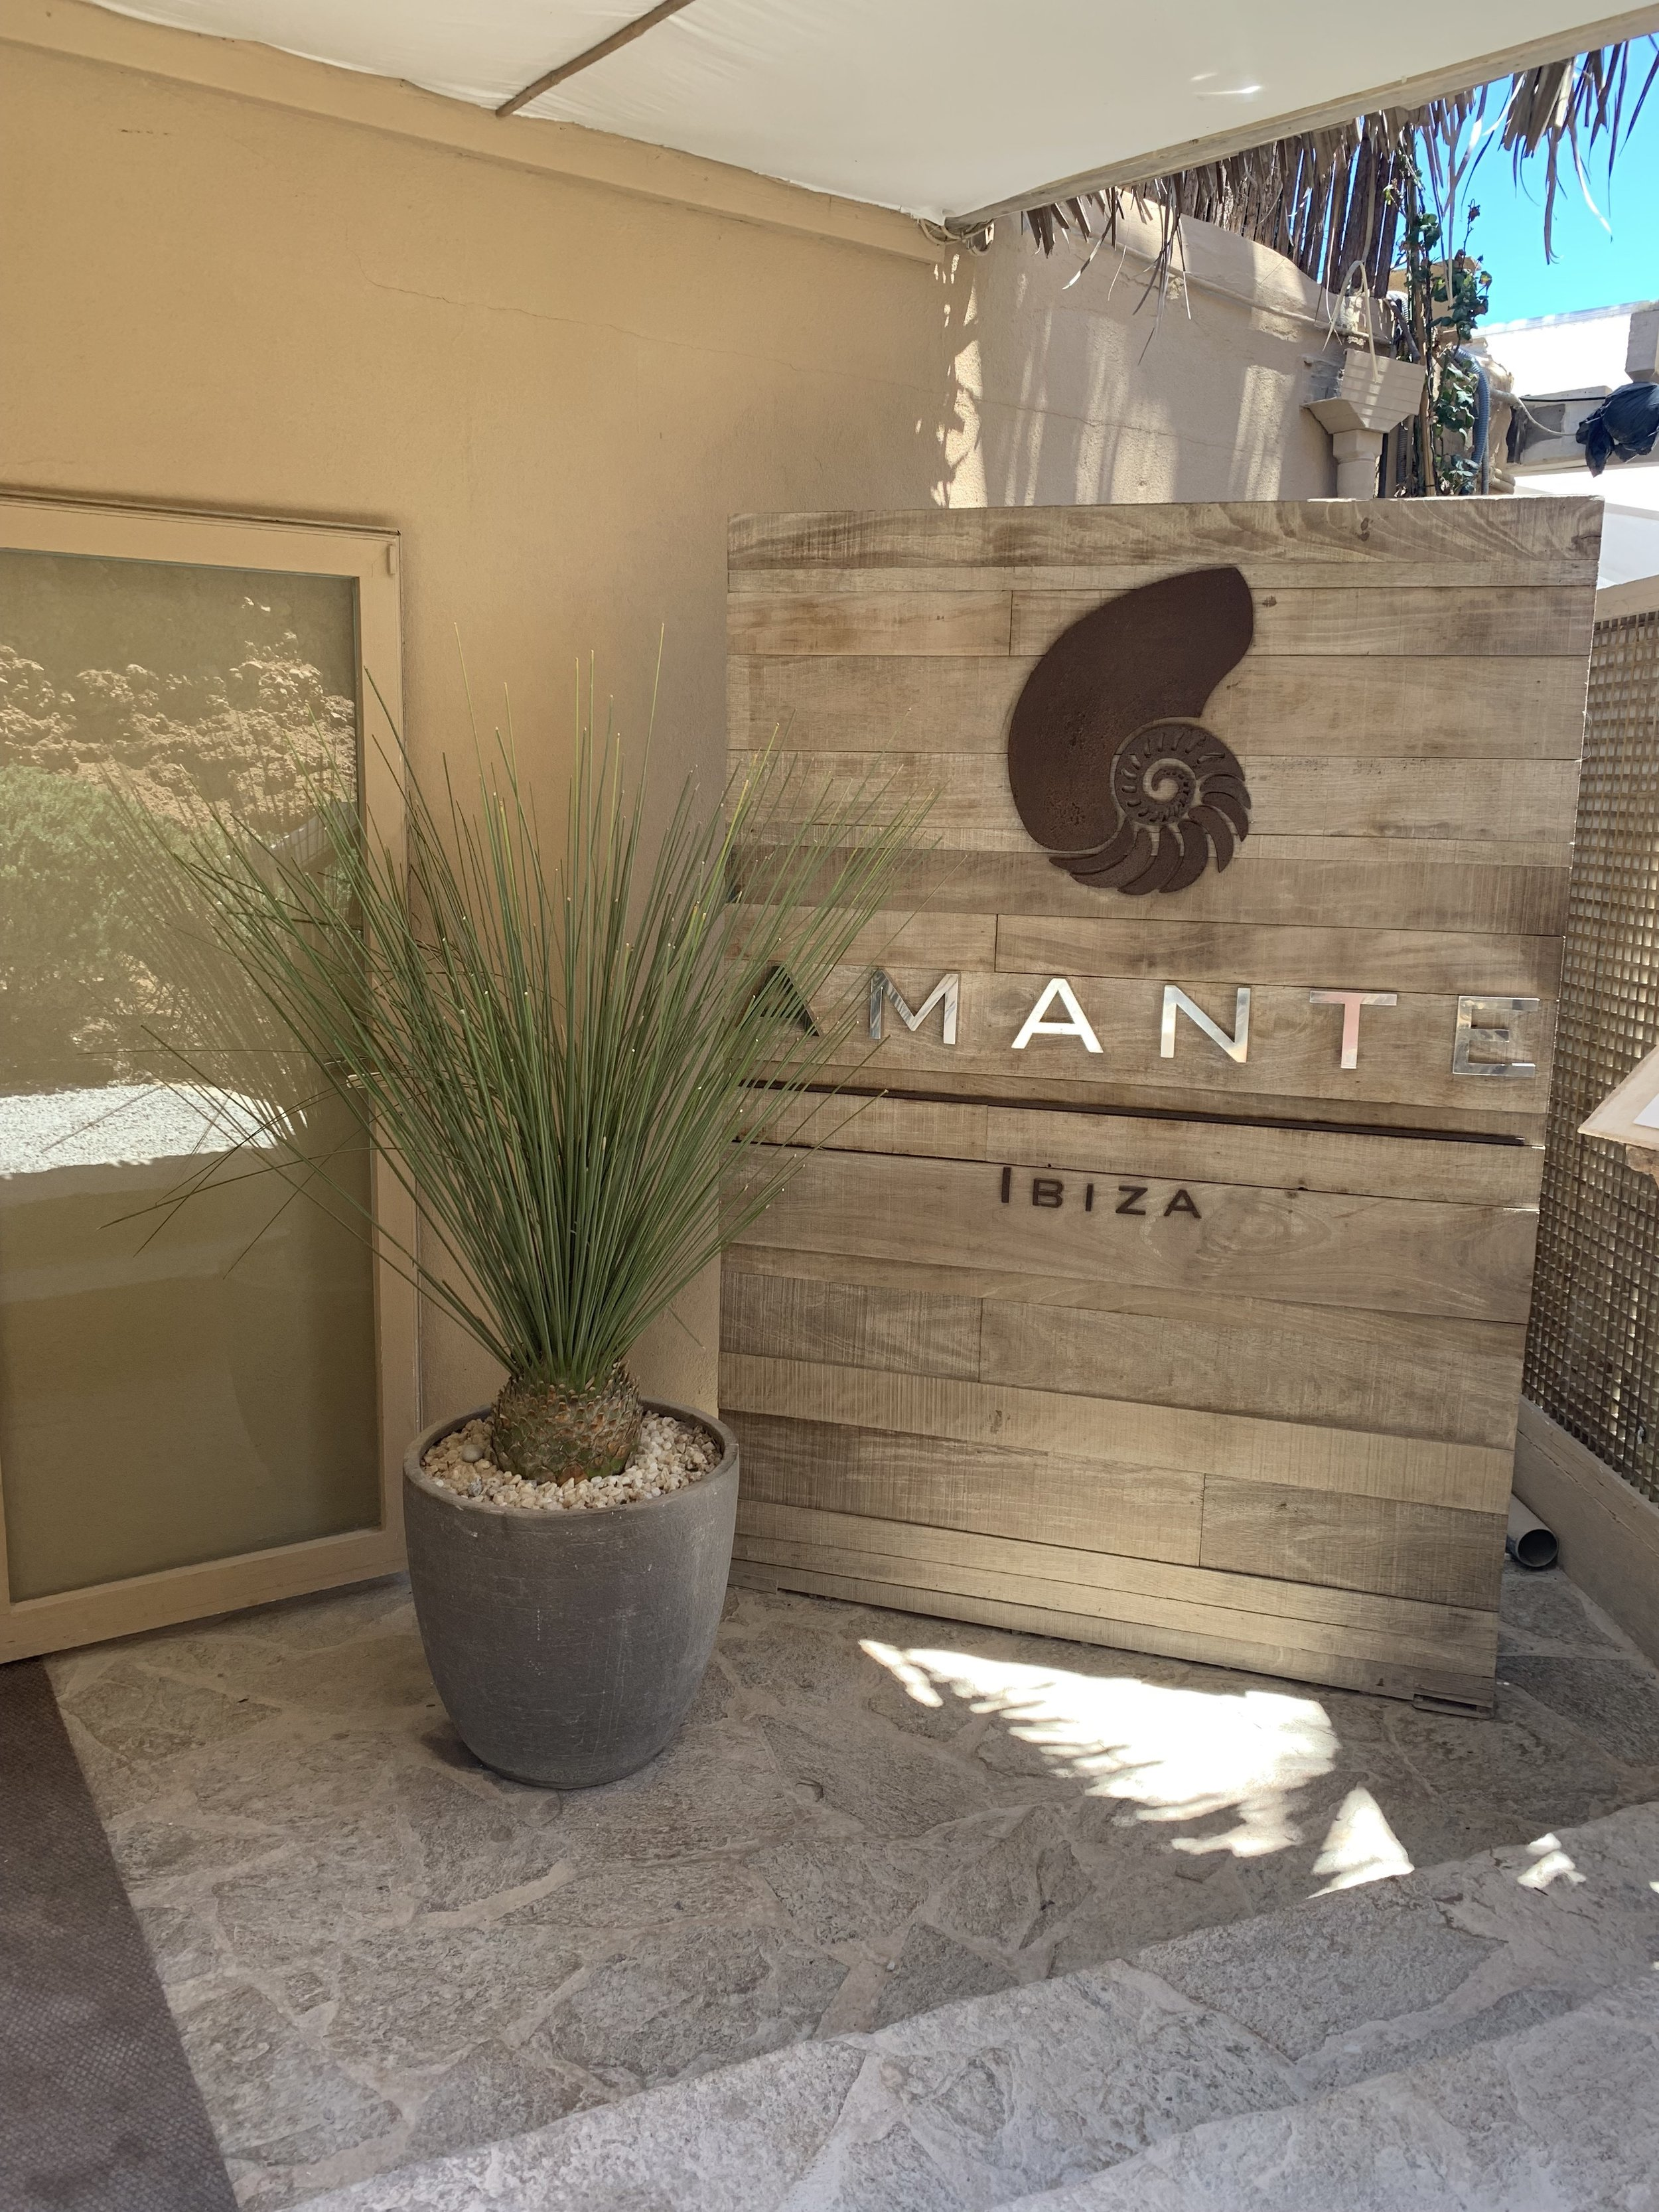 Amante Ibiza | Vanilla Rose Weddings Oxford Wedding Planner